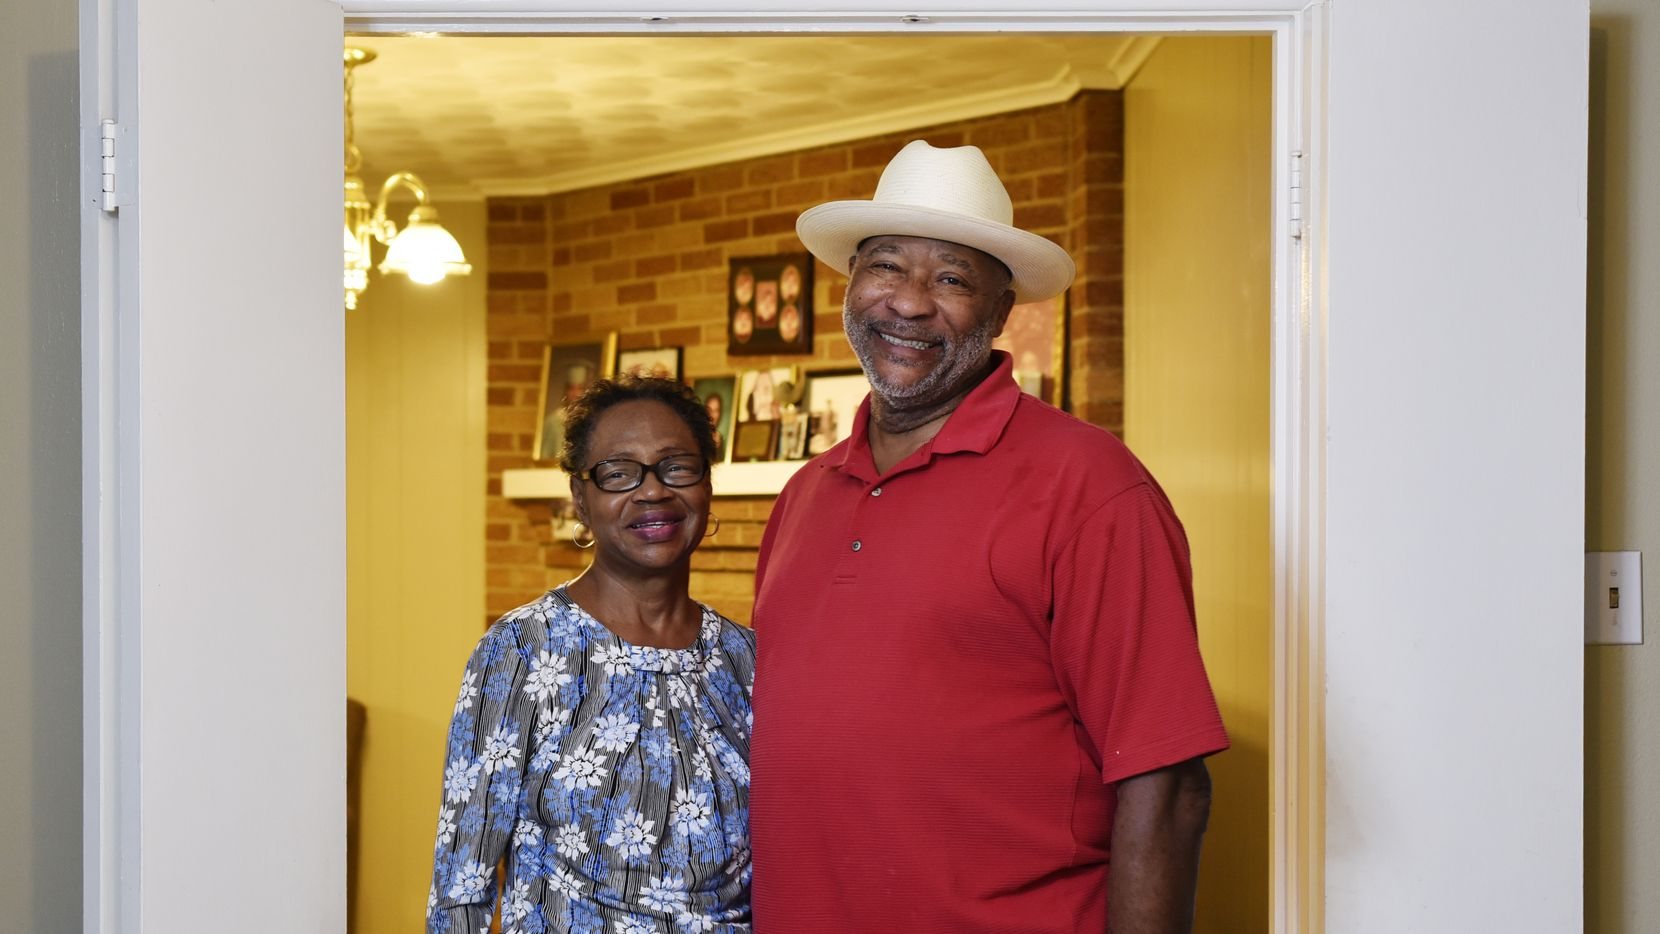 Randolph Dillard (right) has been caring for his wife, Willa, who has Alzheimer's disease, for two years.